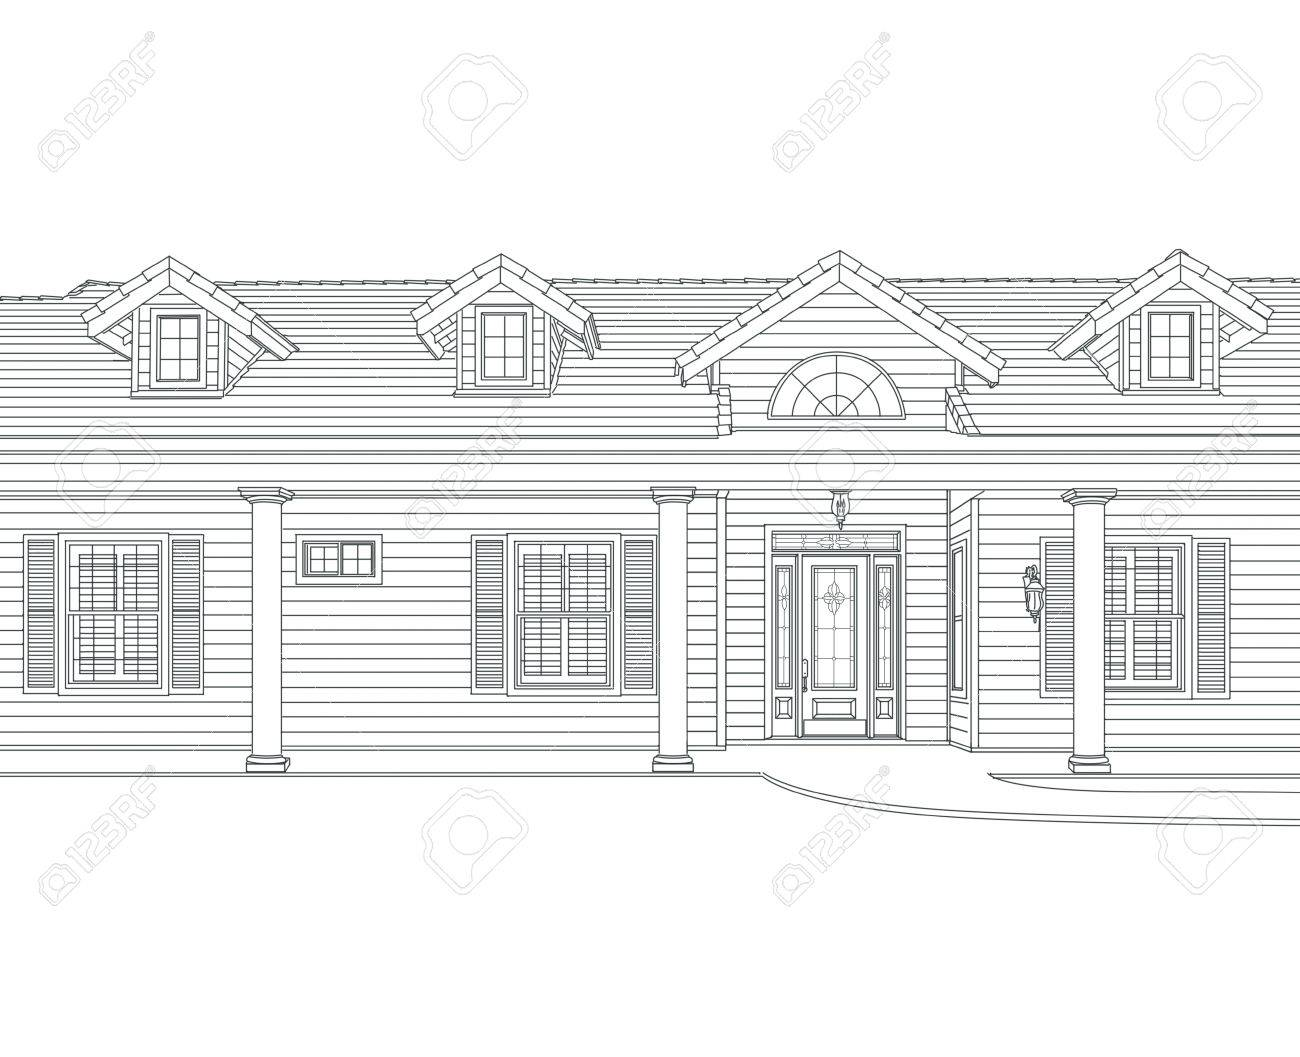 custom black pencil house drawing on white background